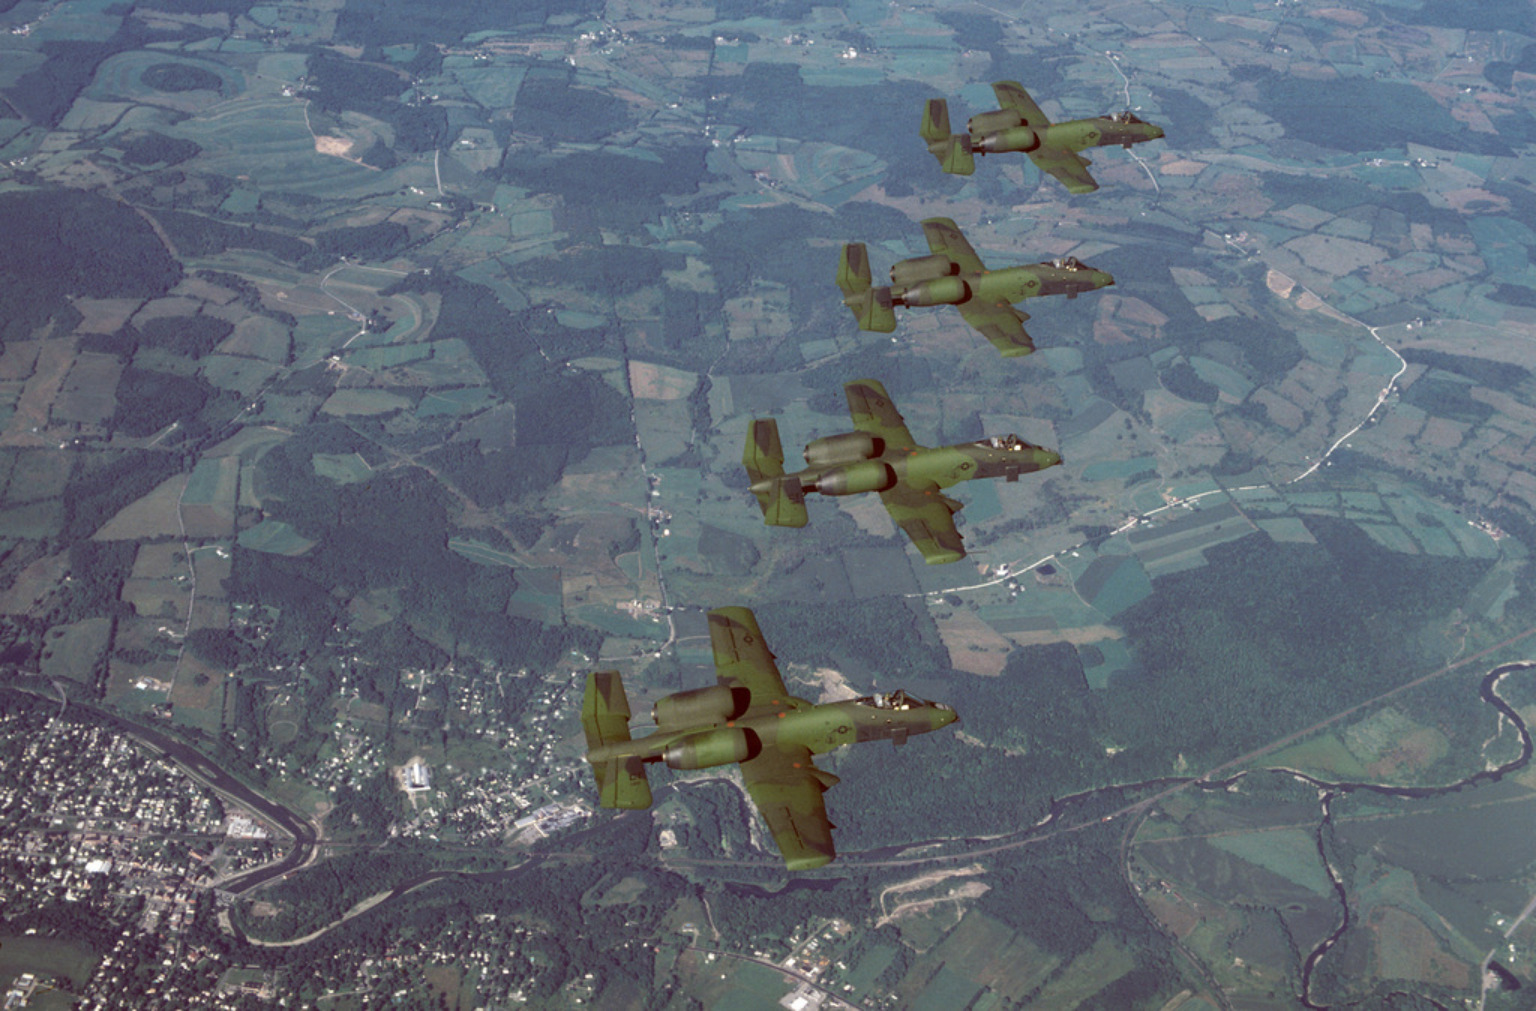 four_connecticut_air_national_guard_a-10a_thunderbolt_ii_aircraft_fly_in_formation.jpg